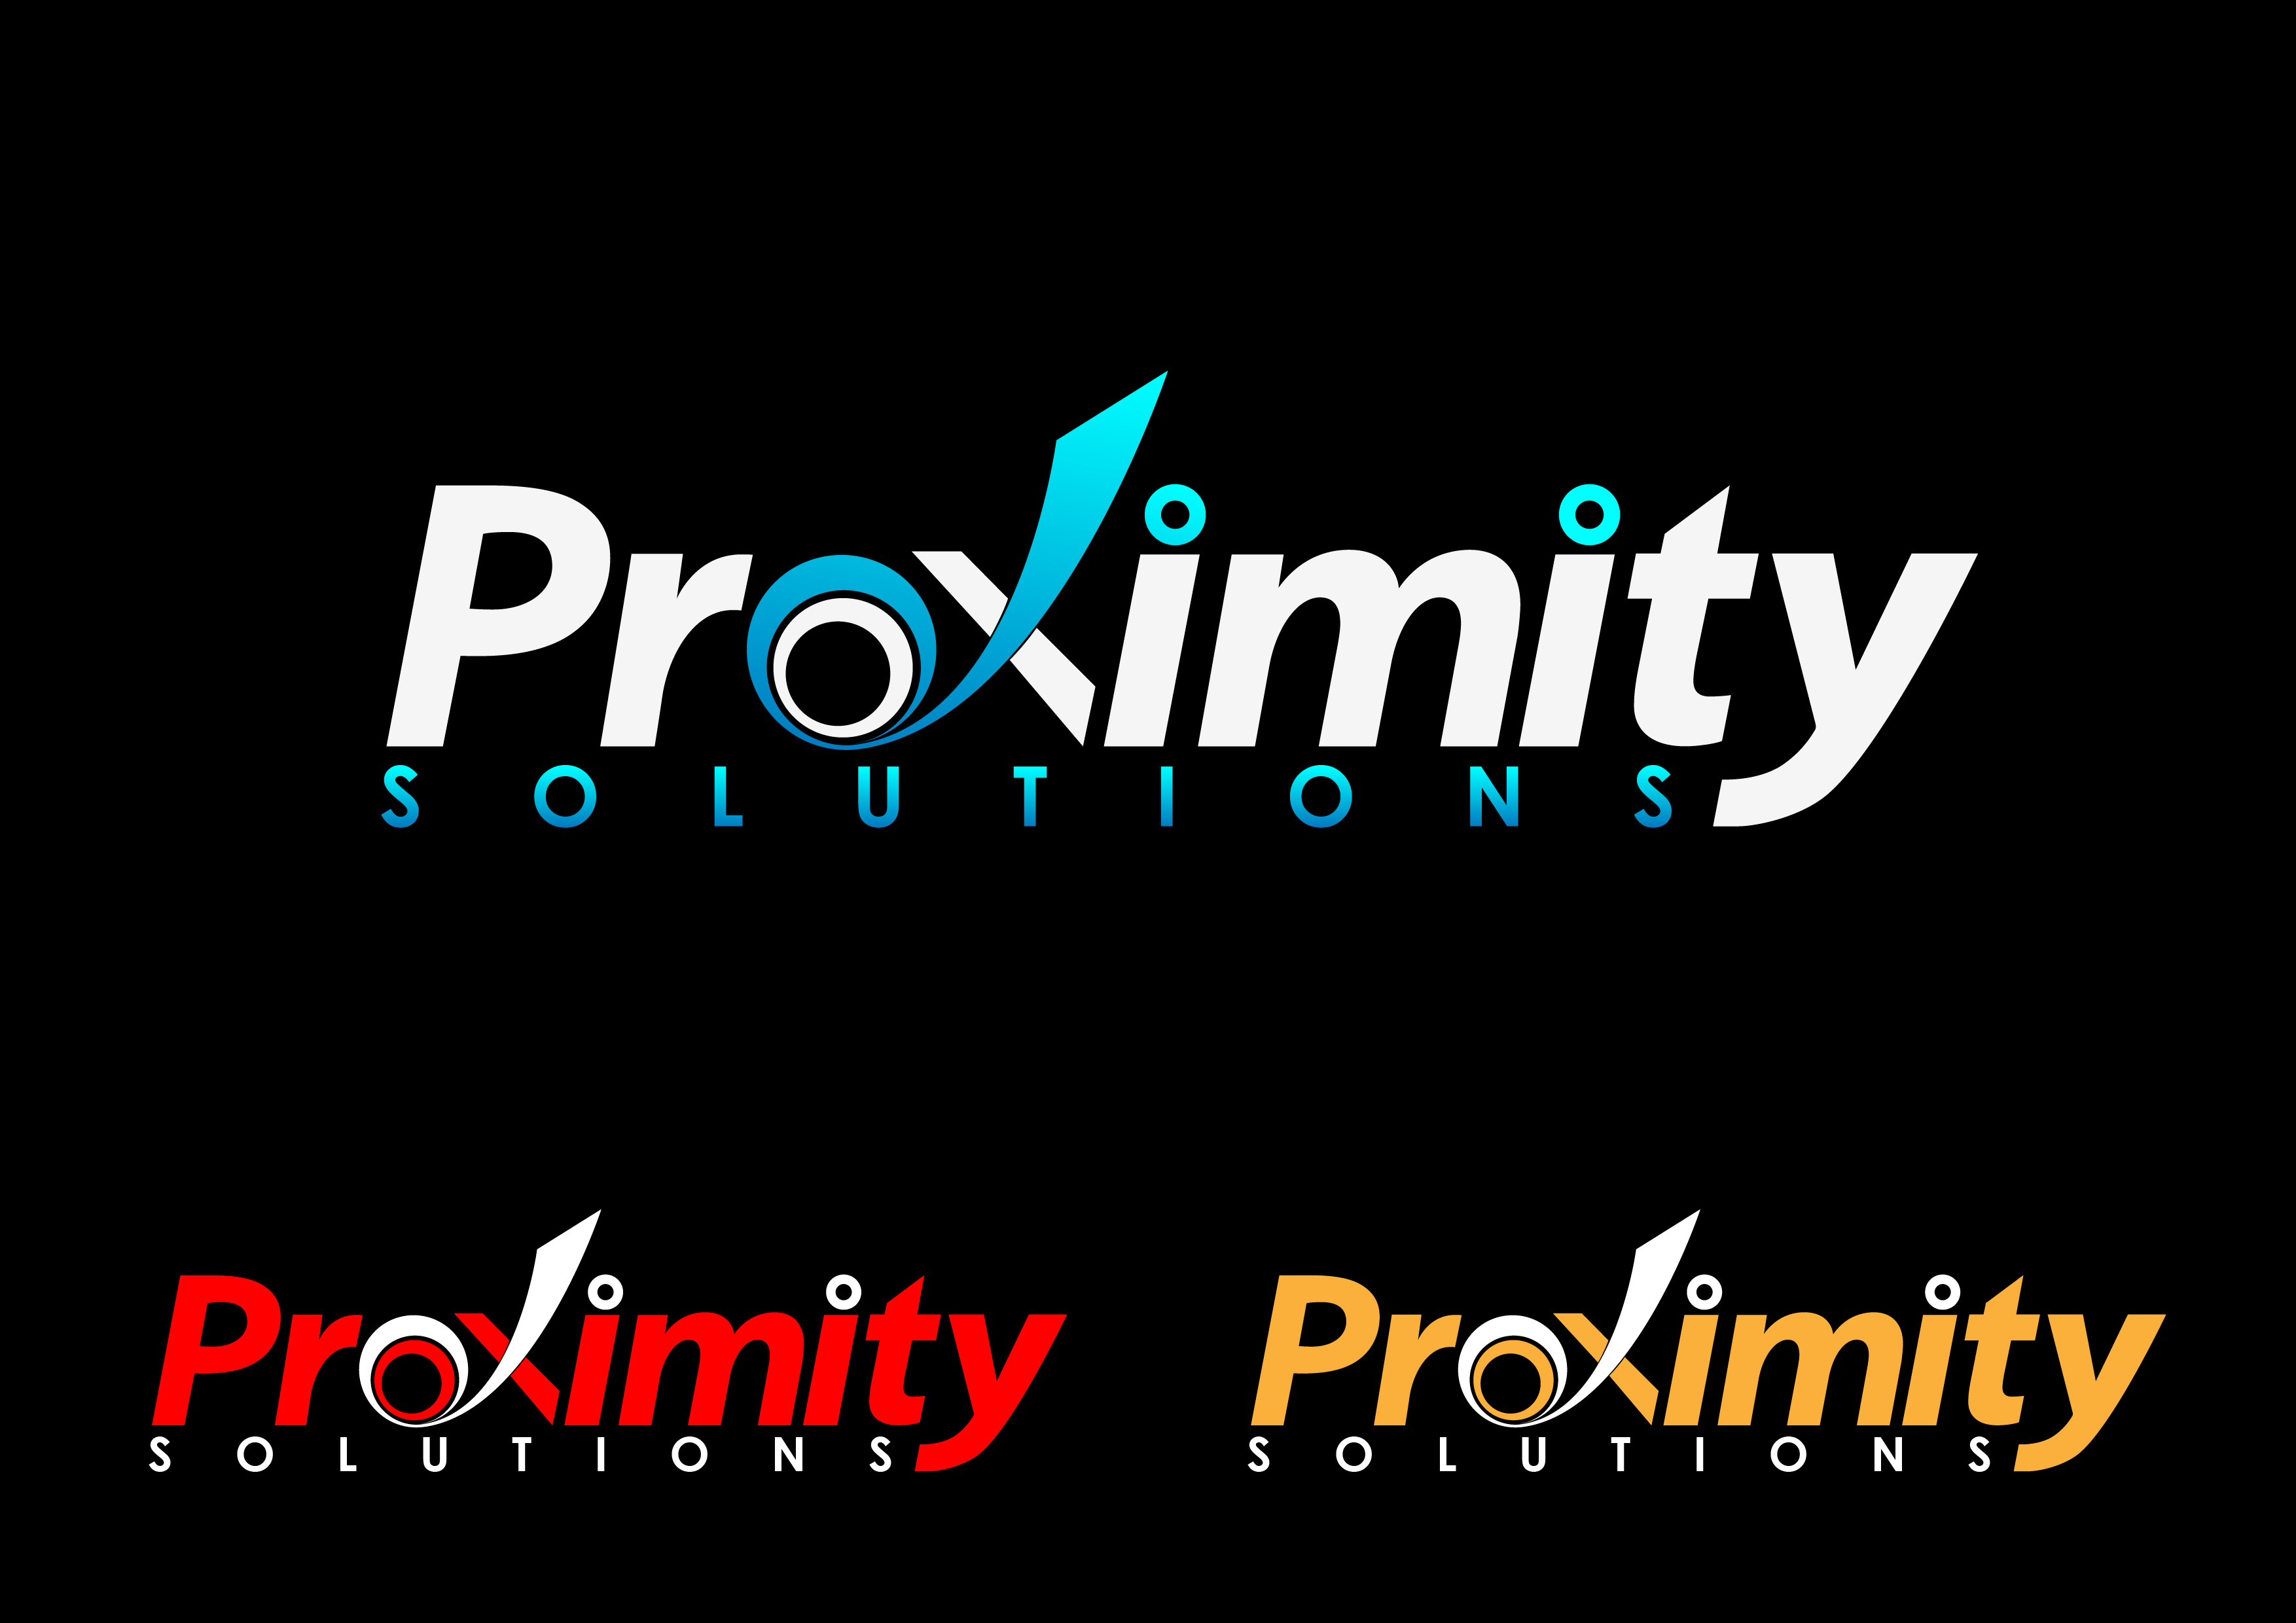 Logo Design by 3draw - Entry No. 109 in the Logo Design Contest New Logo Design for Proximity Solutions.